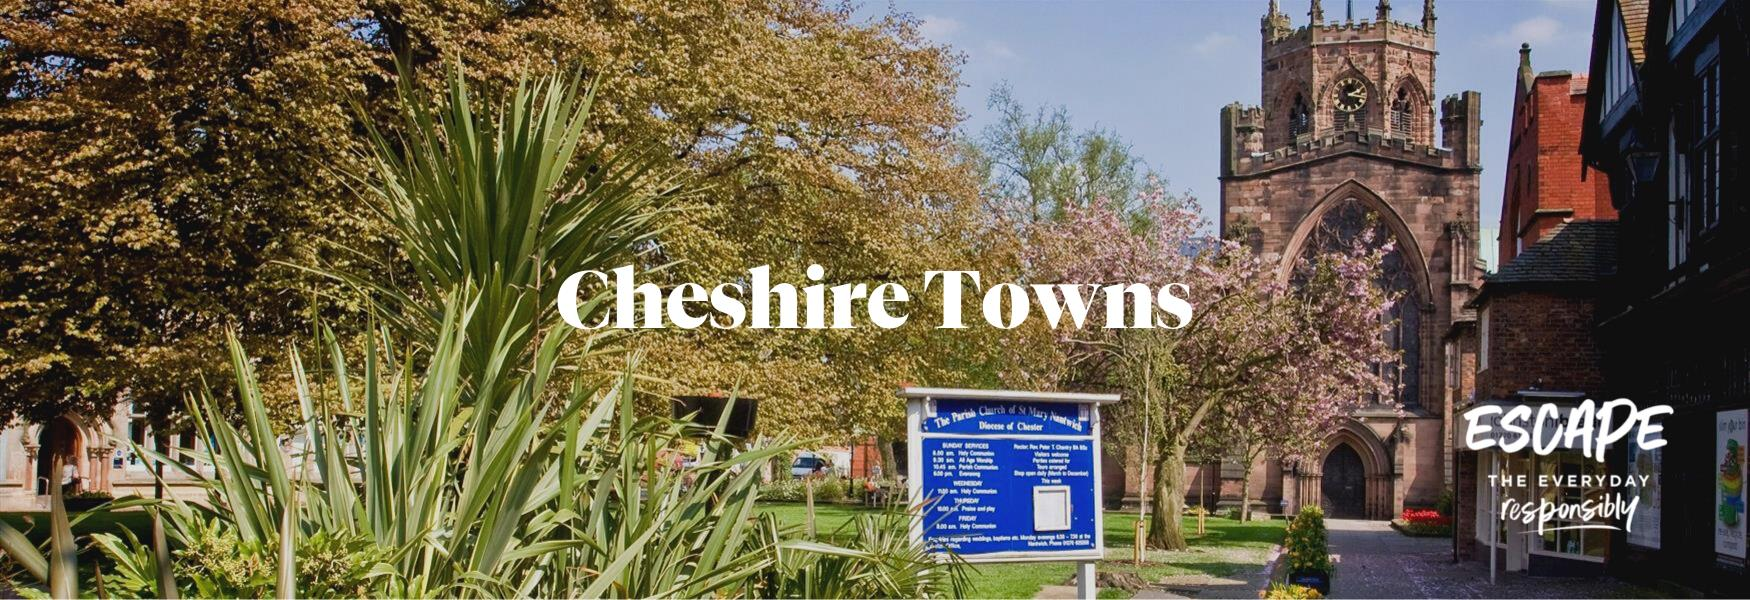 Cheshire Towns